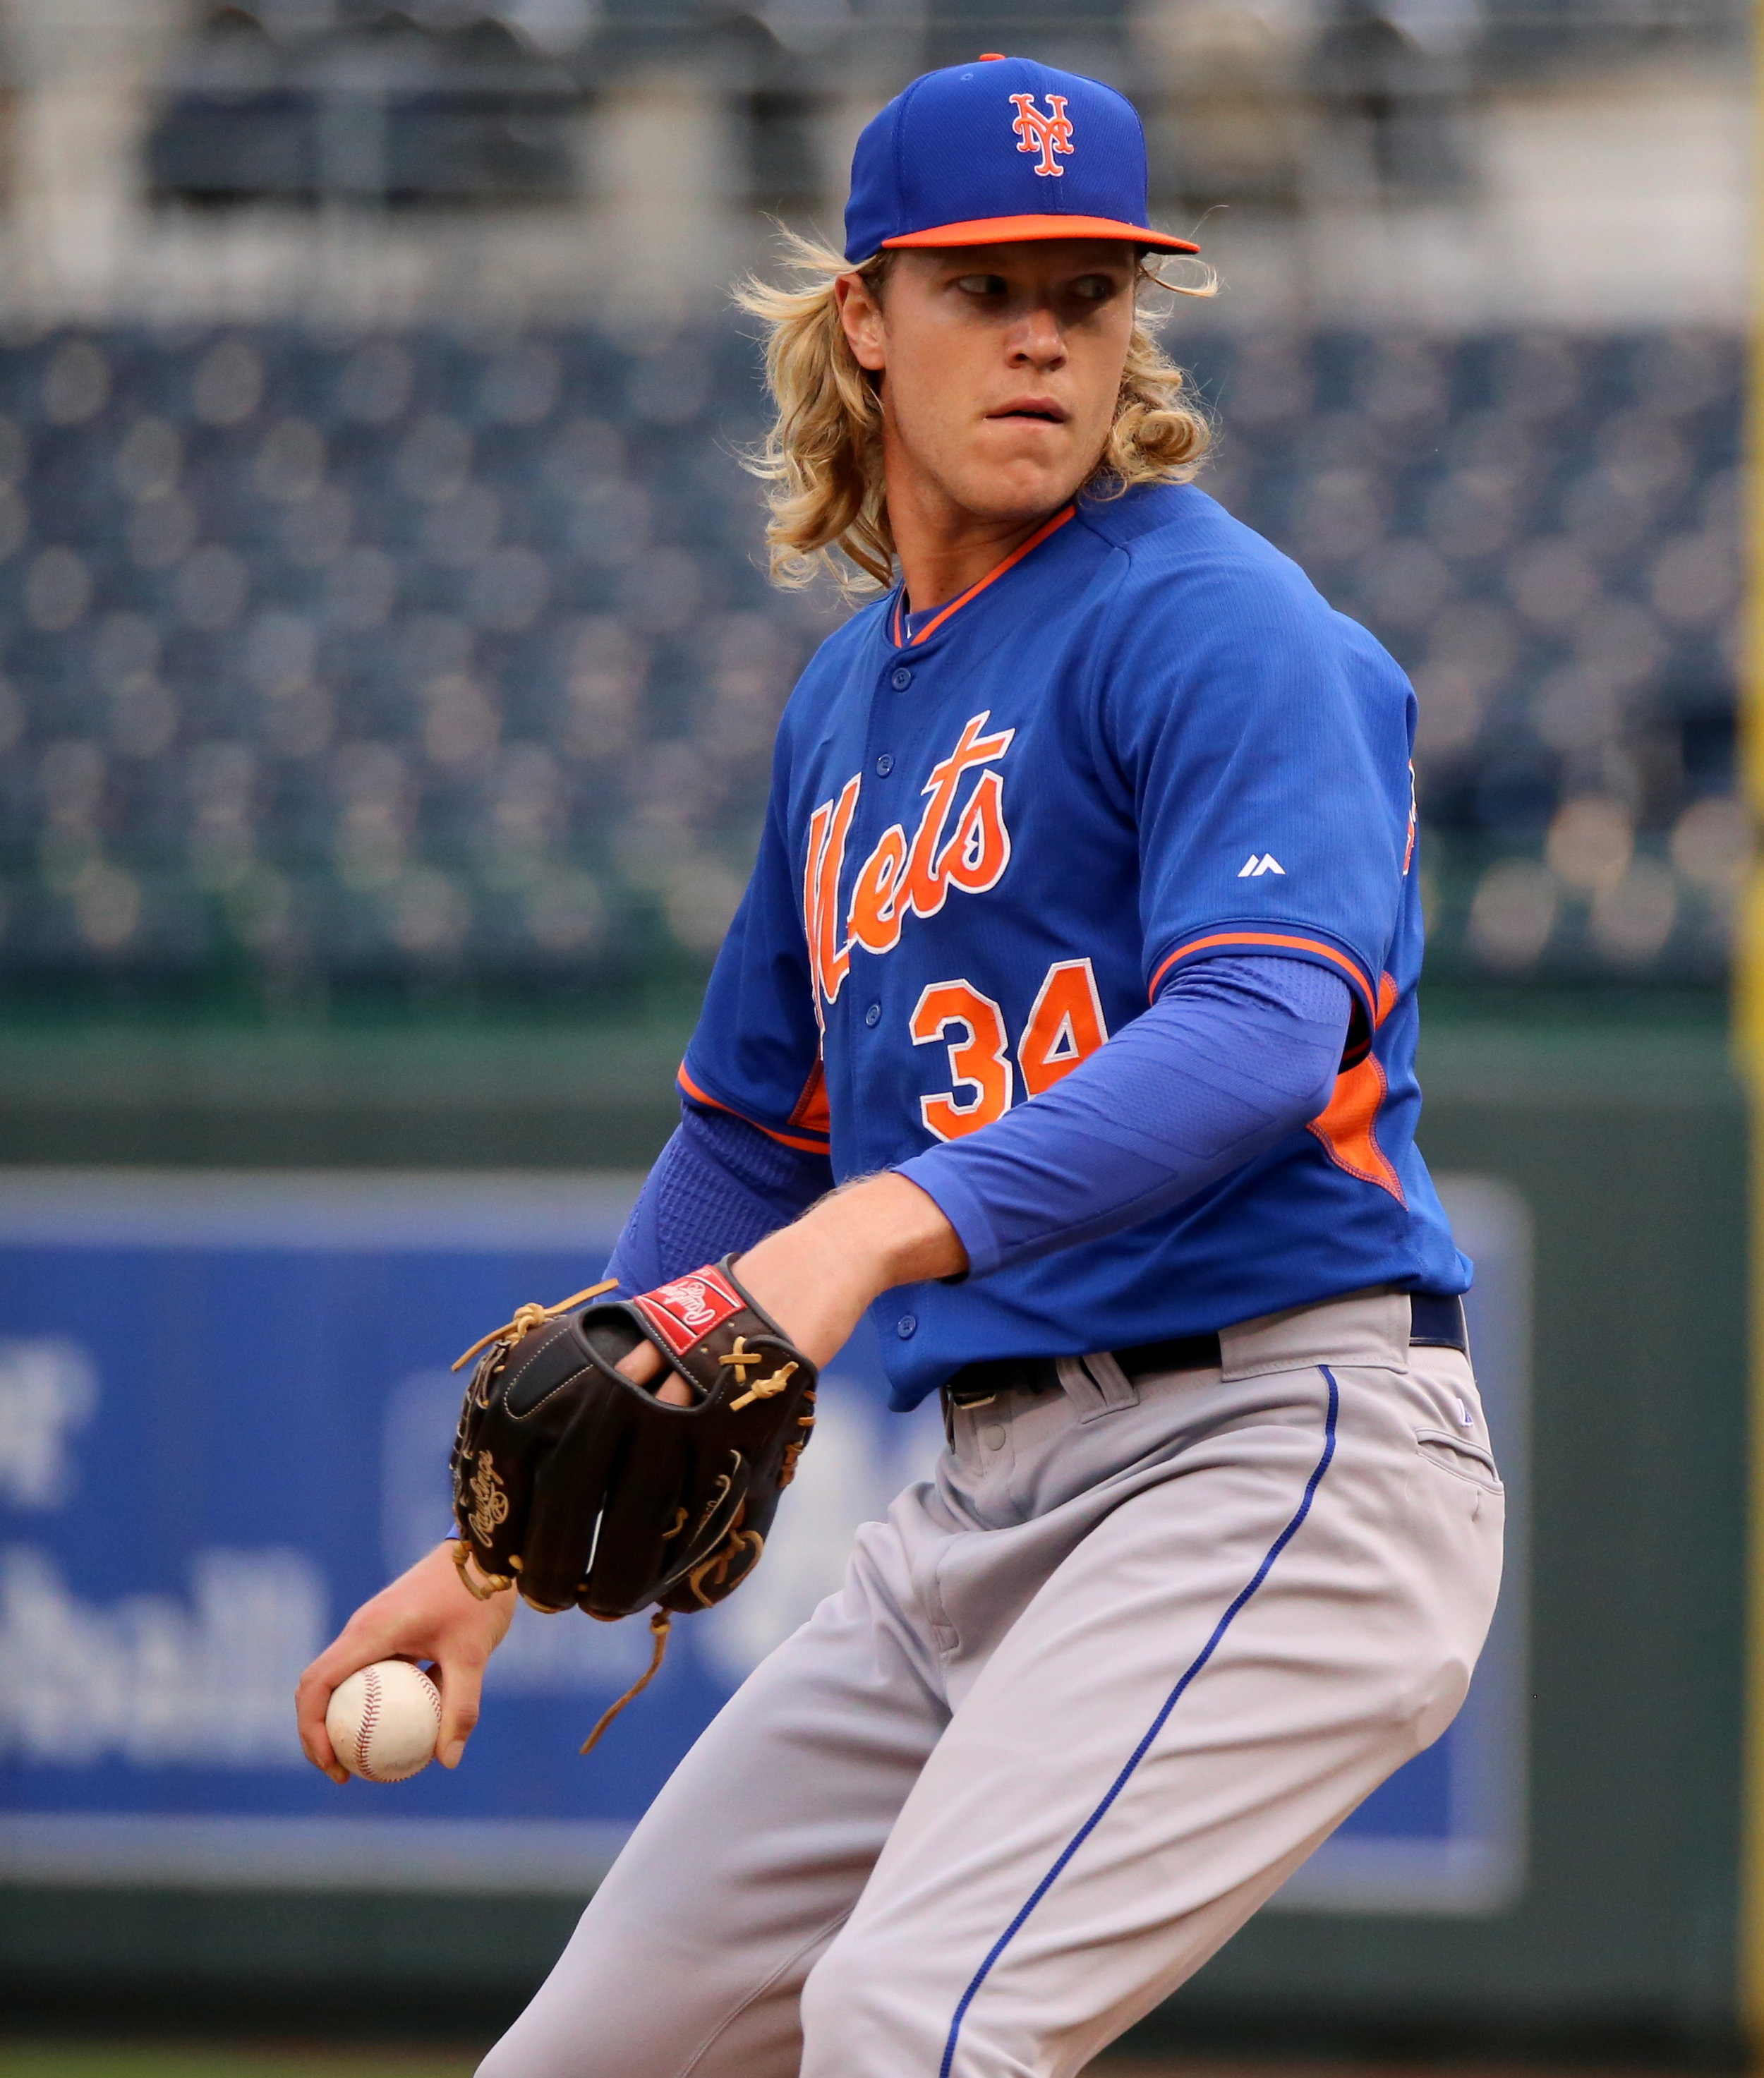 Mets pitcher Noah Syndergaard is the namesake of Syndergaard, a horse who won at Aqueduct Saturday. Photo by Arthur Pardavila III.